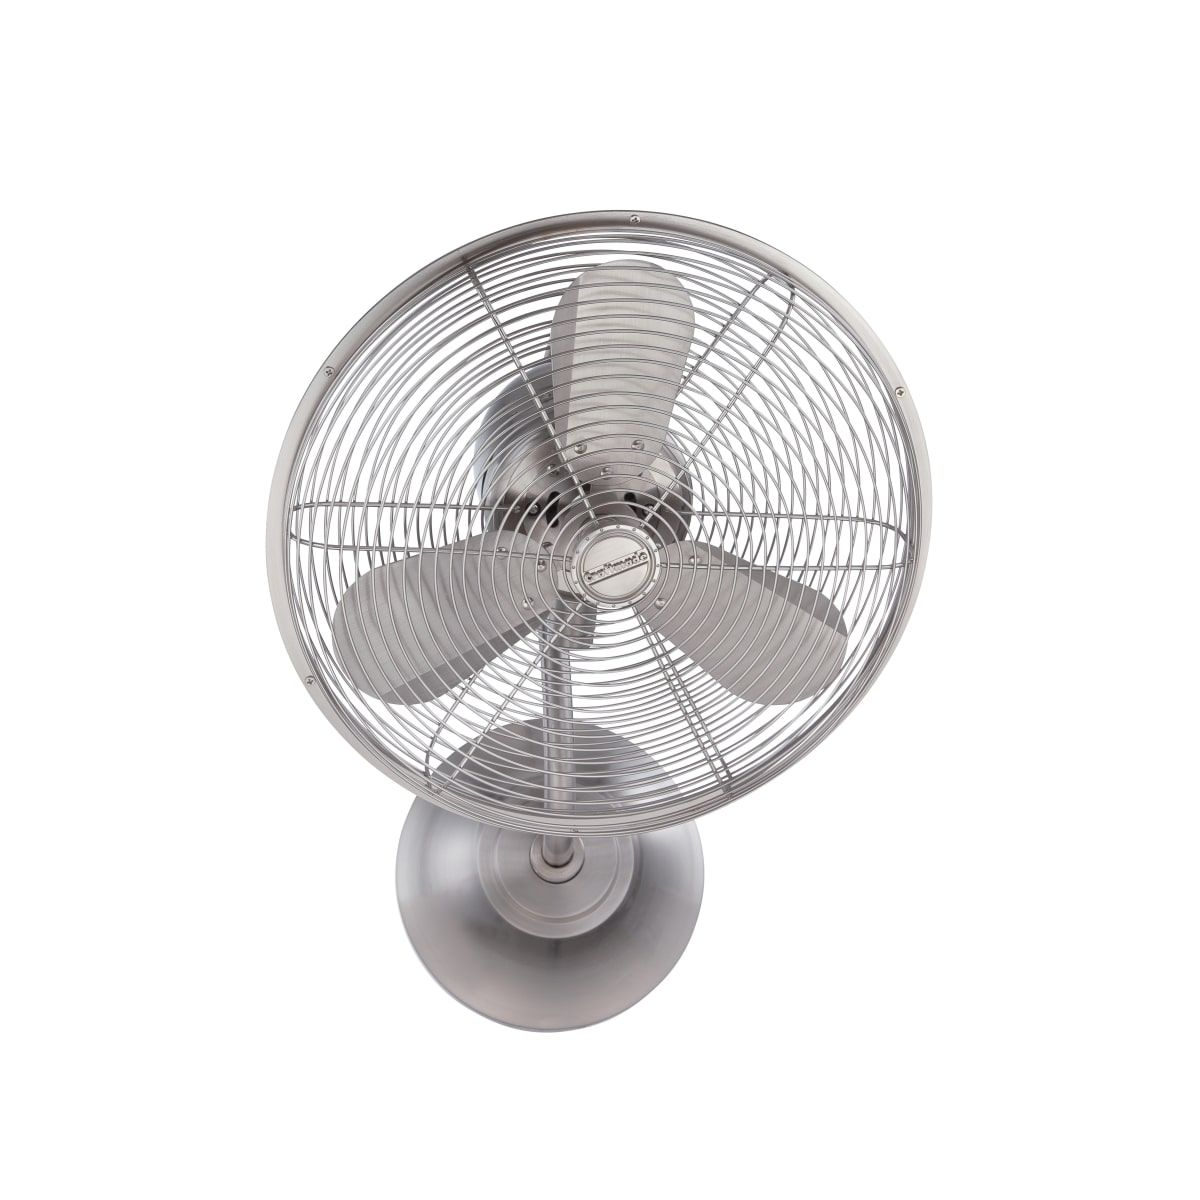 65 Air King Wall Mount Fan 940 800 700 Cfm 12 In Residential Wall Mount Fans 4c630 9012 Grainger In Wall Mounted Fan Wall Mount Fans Wall Mounted Fans